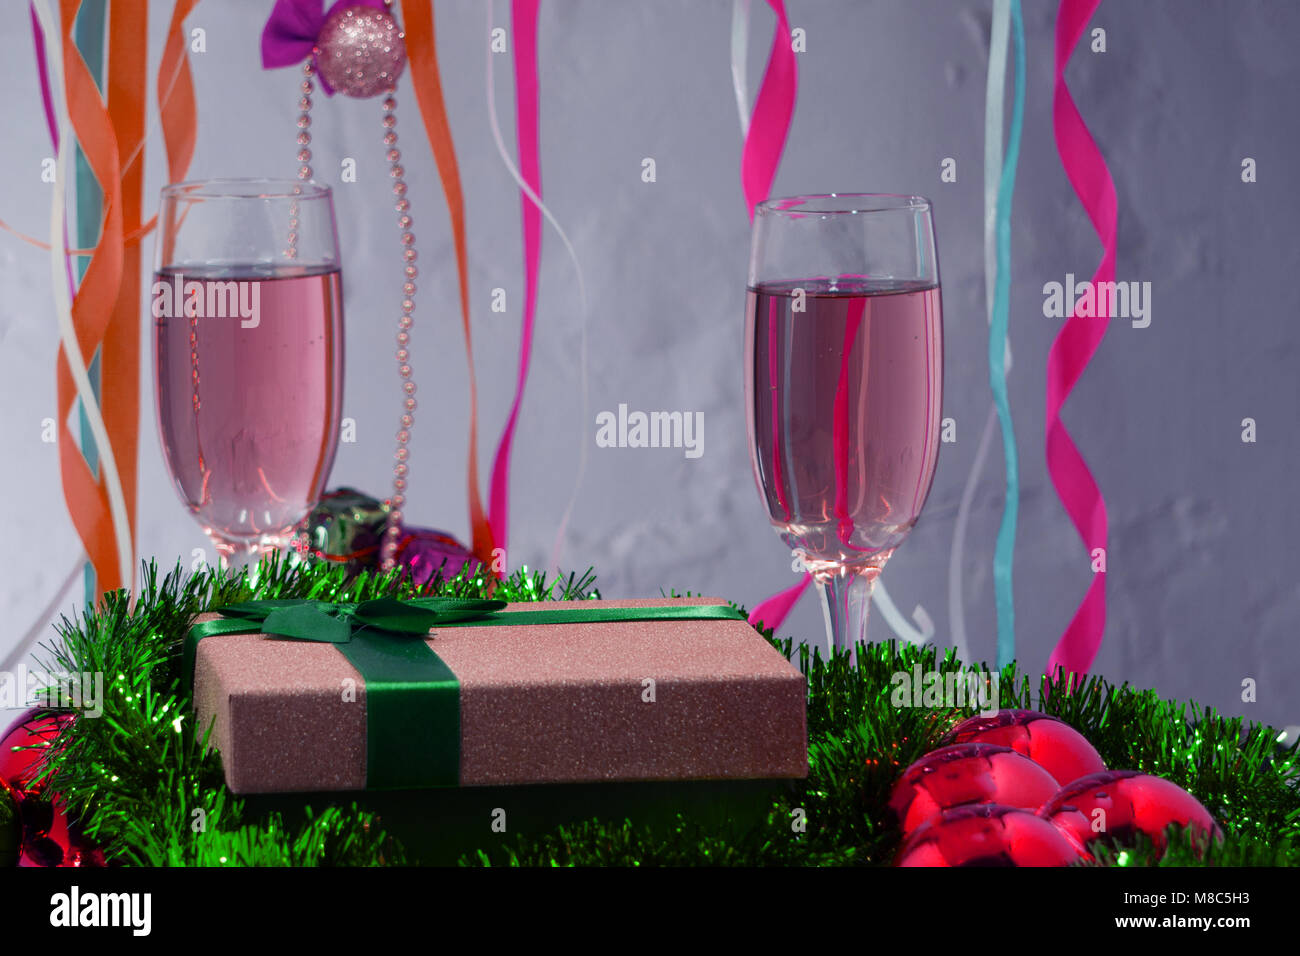 Champagne with redcurrant liqueur - Stock Image